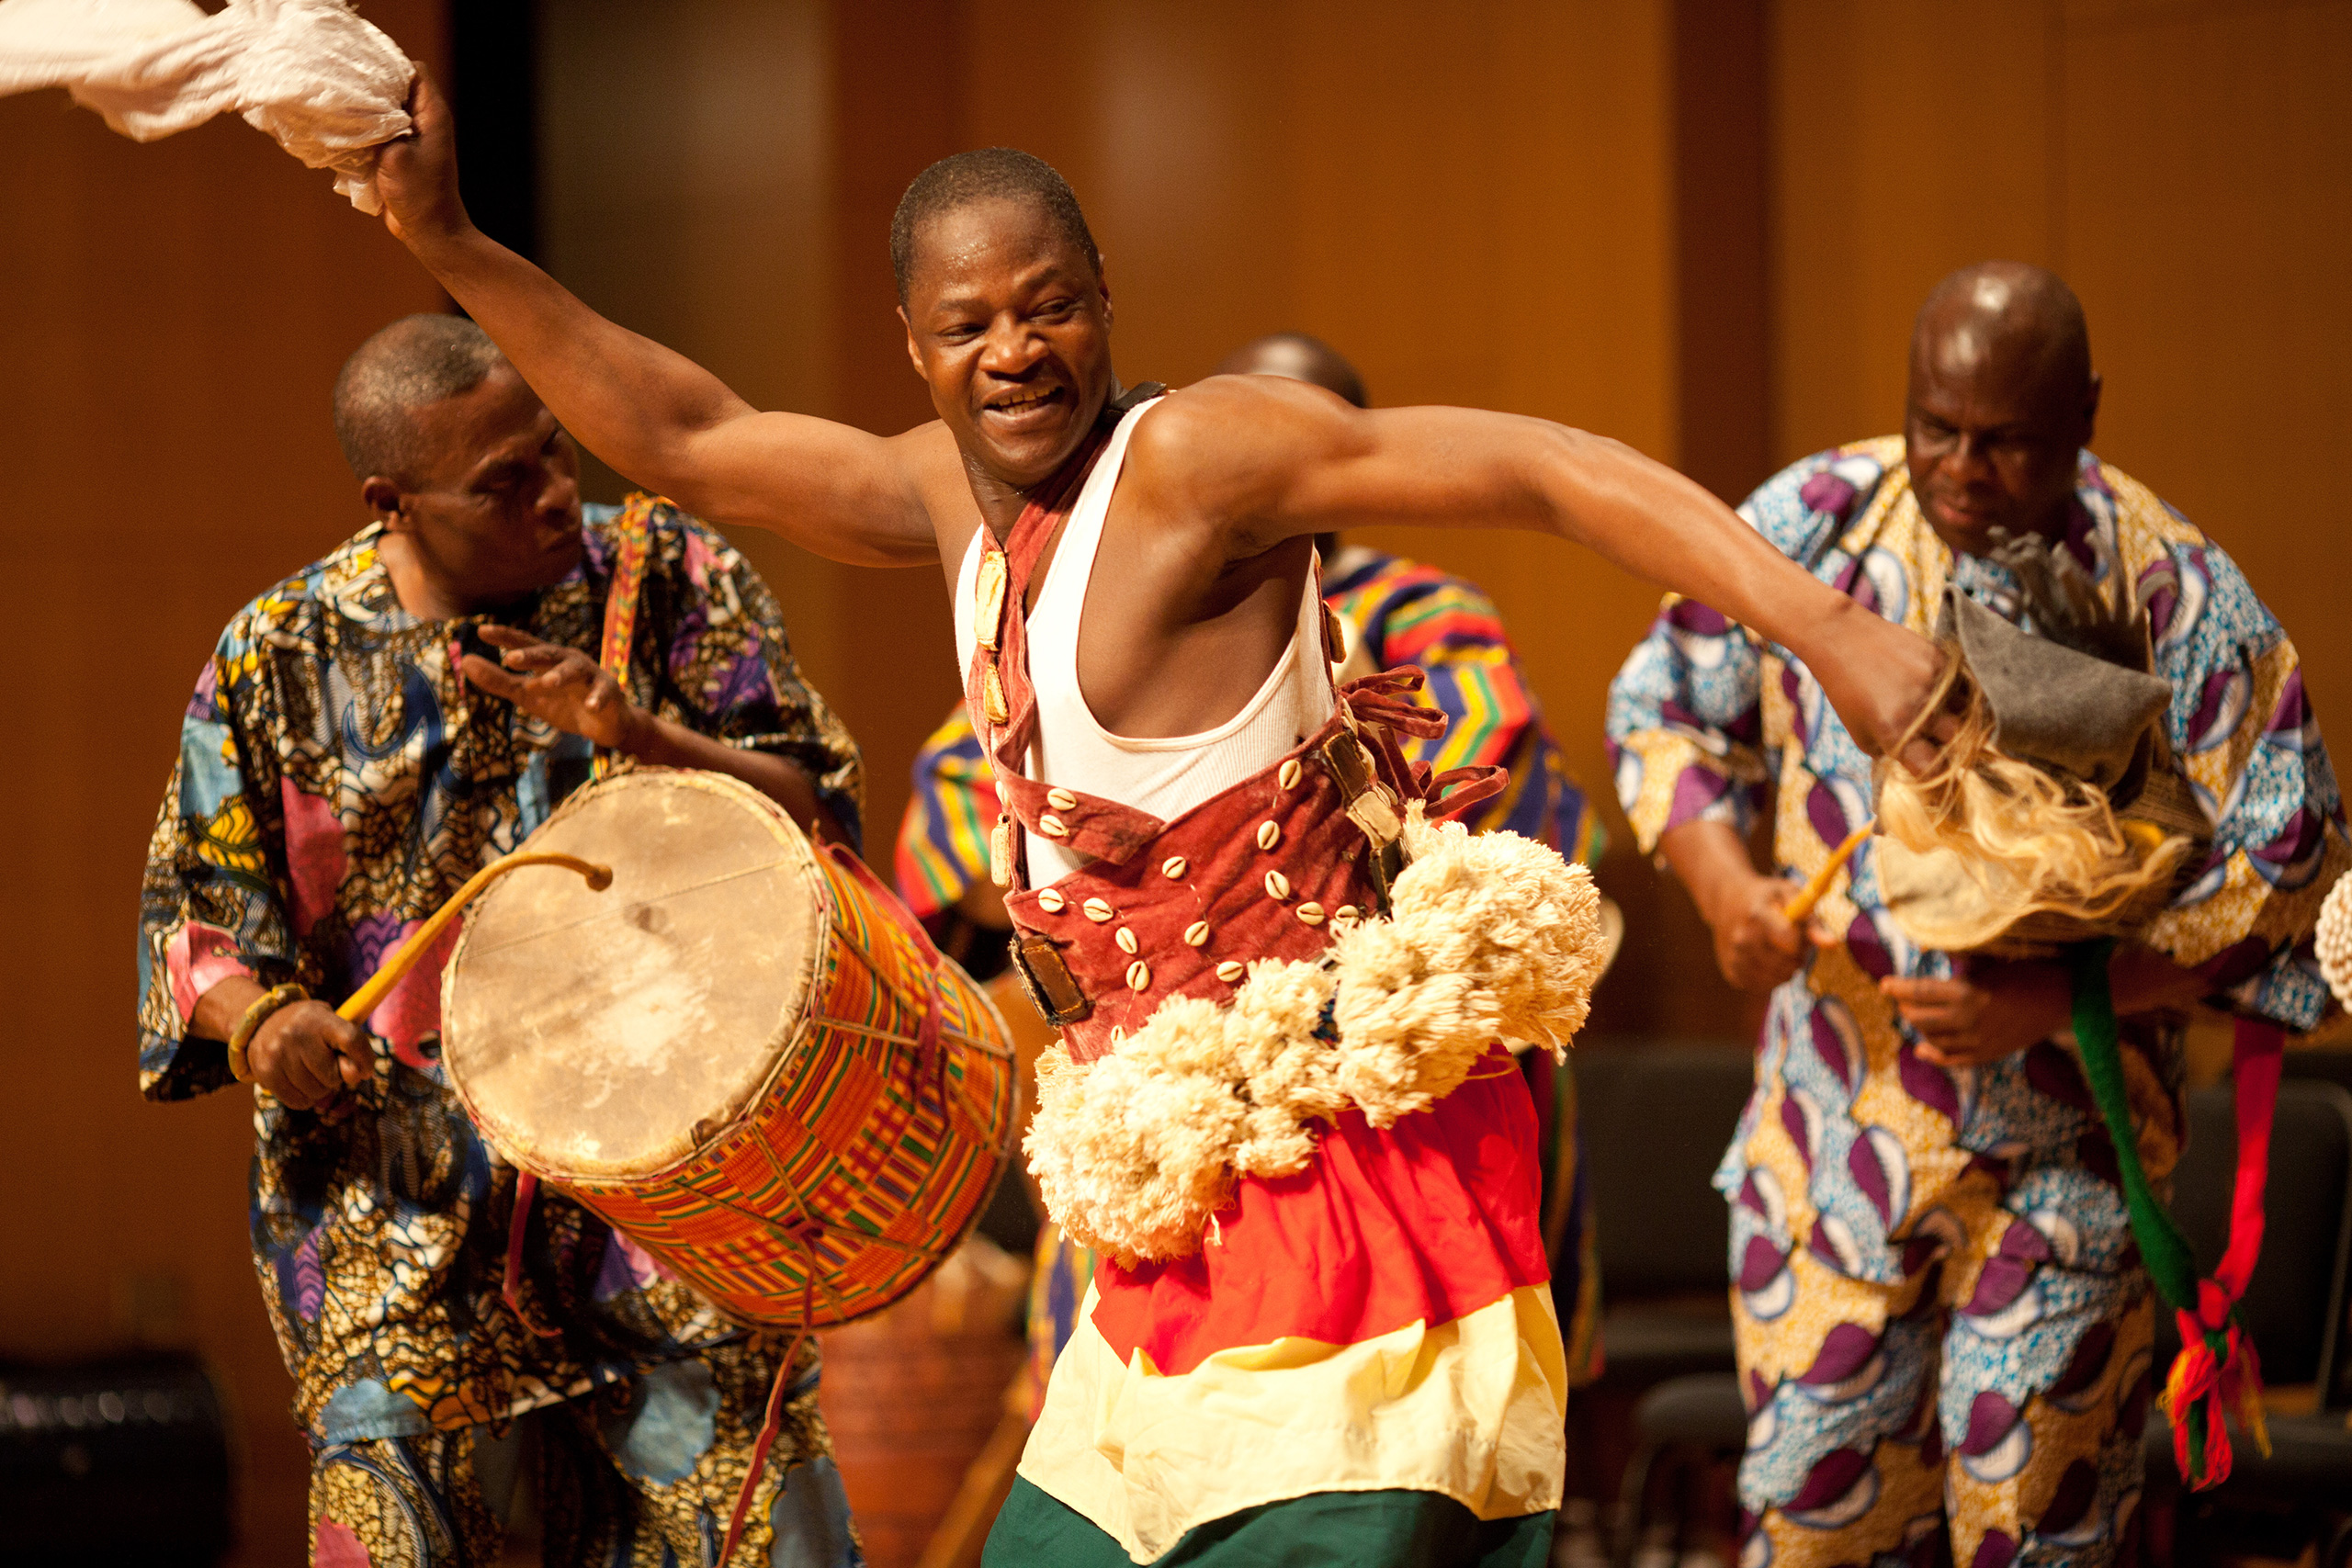 Annual African Cultural Festival brings dancing, drumming and global music to UNT